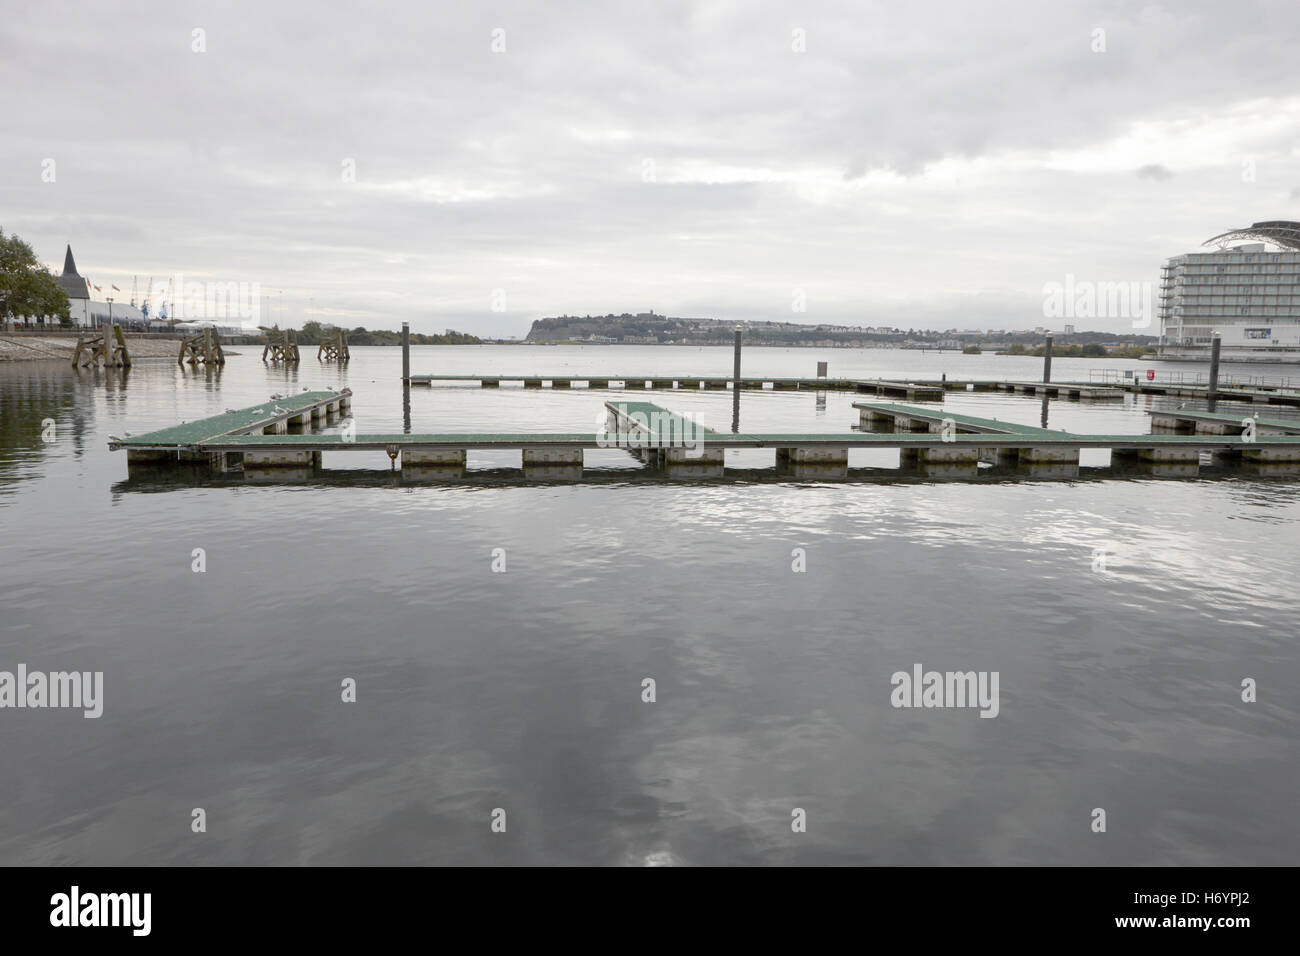 short stay visitors moorings Cardiff bay marina on an overcast day  Wales United Kingdom - Stock Image